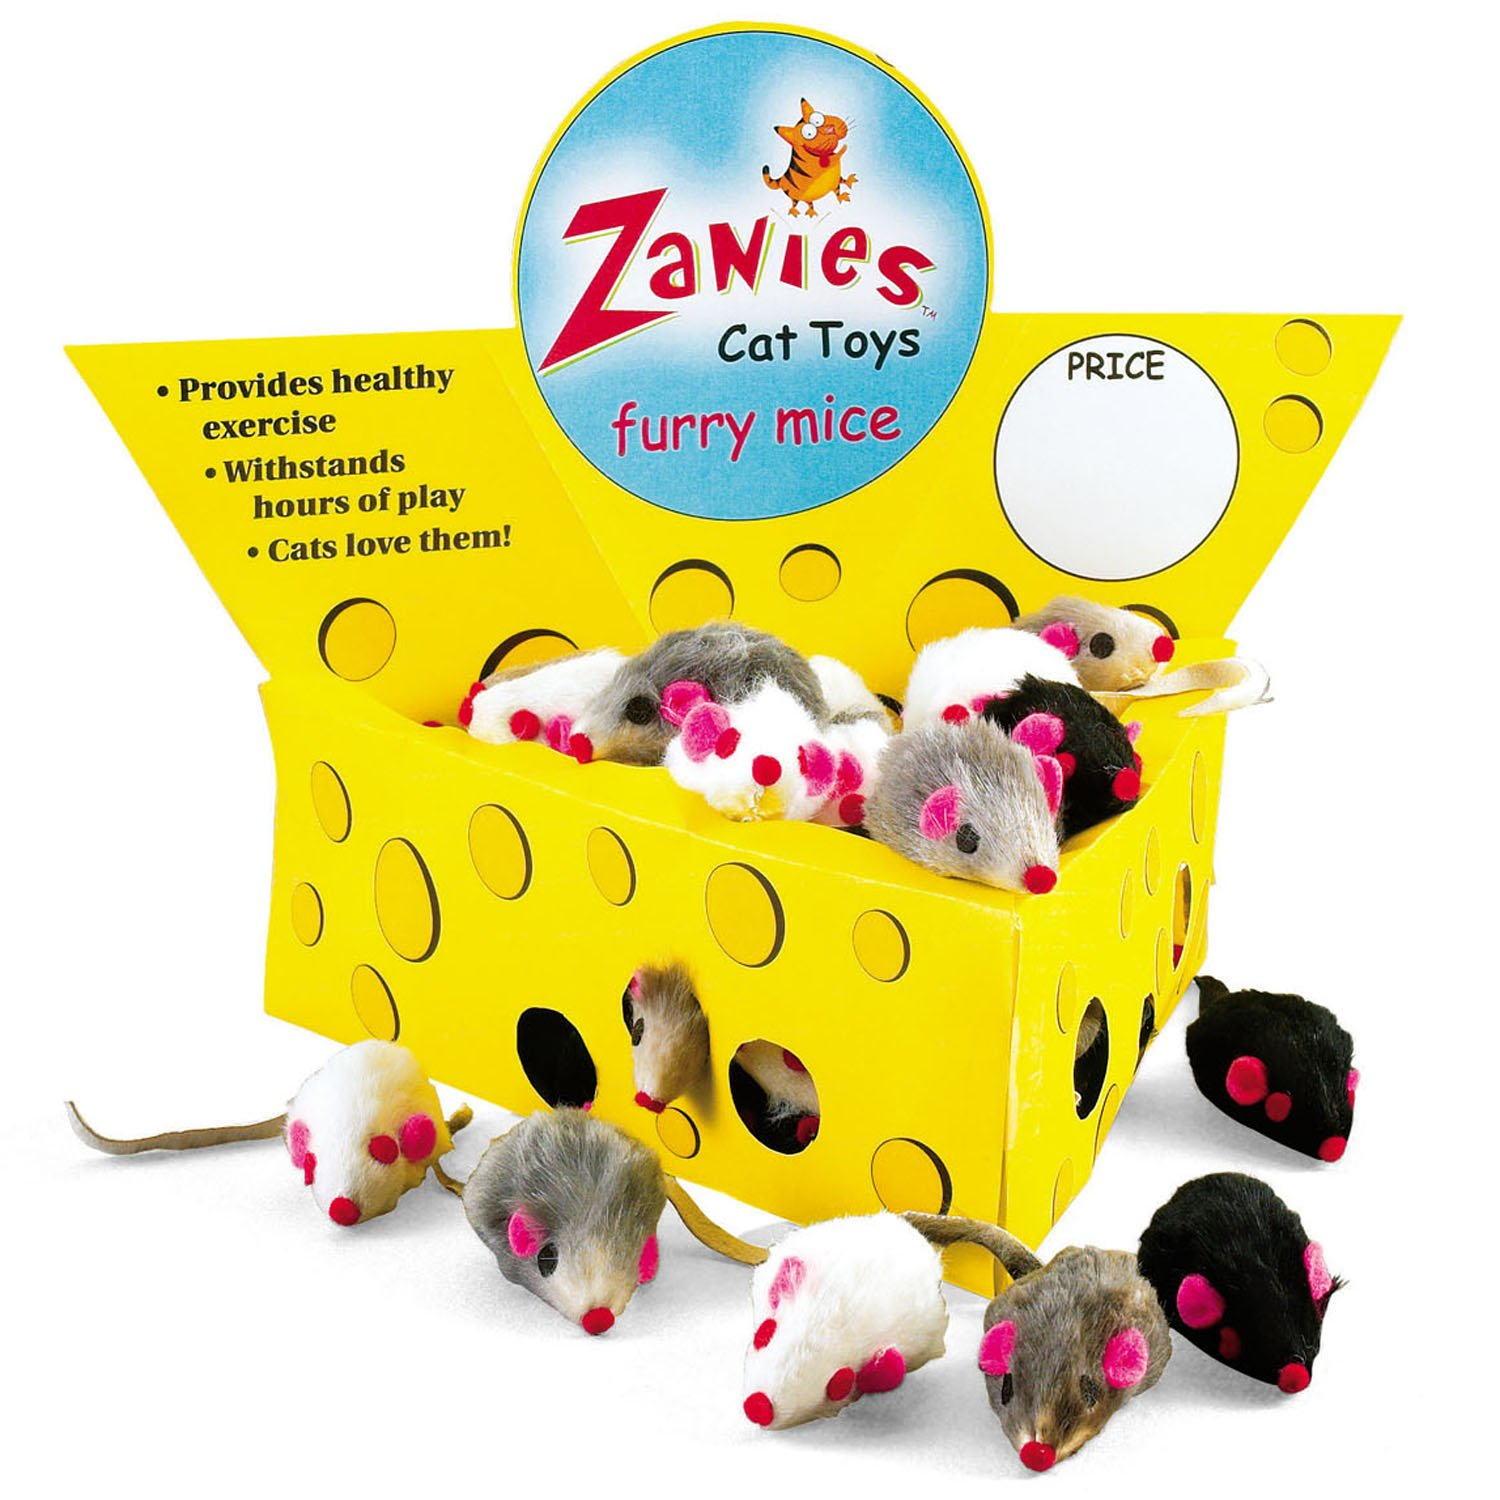 Pet Edge Zanies Cheese Wedge Display Box with 60 Furry Mice Toys for Cats - Mouse Measures 3'' in Length Including Tail by MARDOG